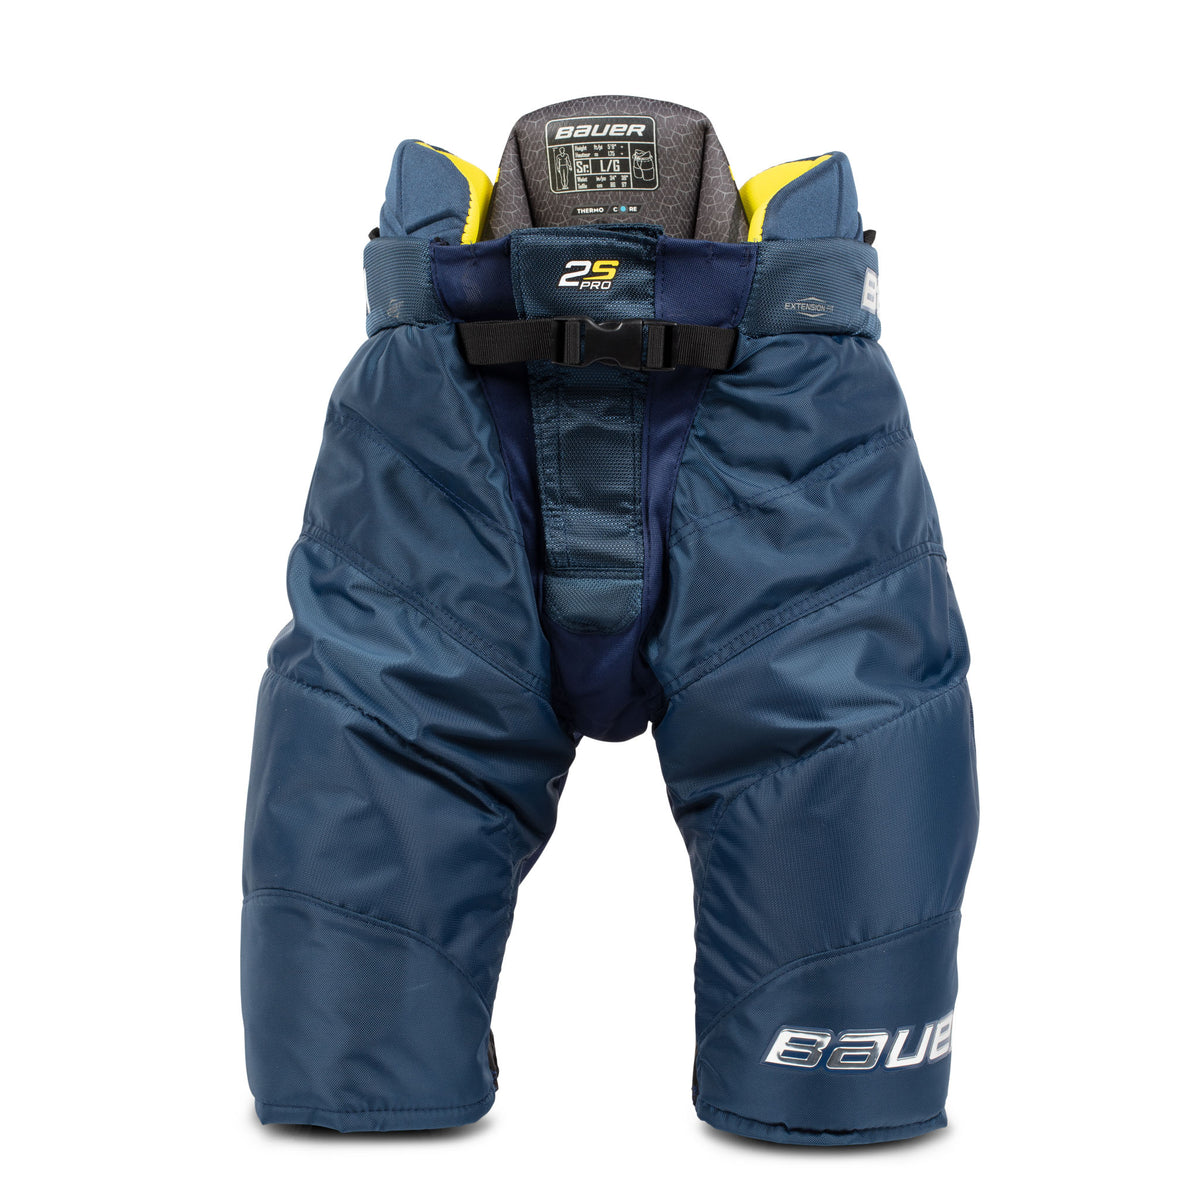 Bauer Supreme 2S Pro Senior Hockey Pants